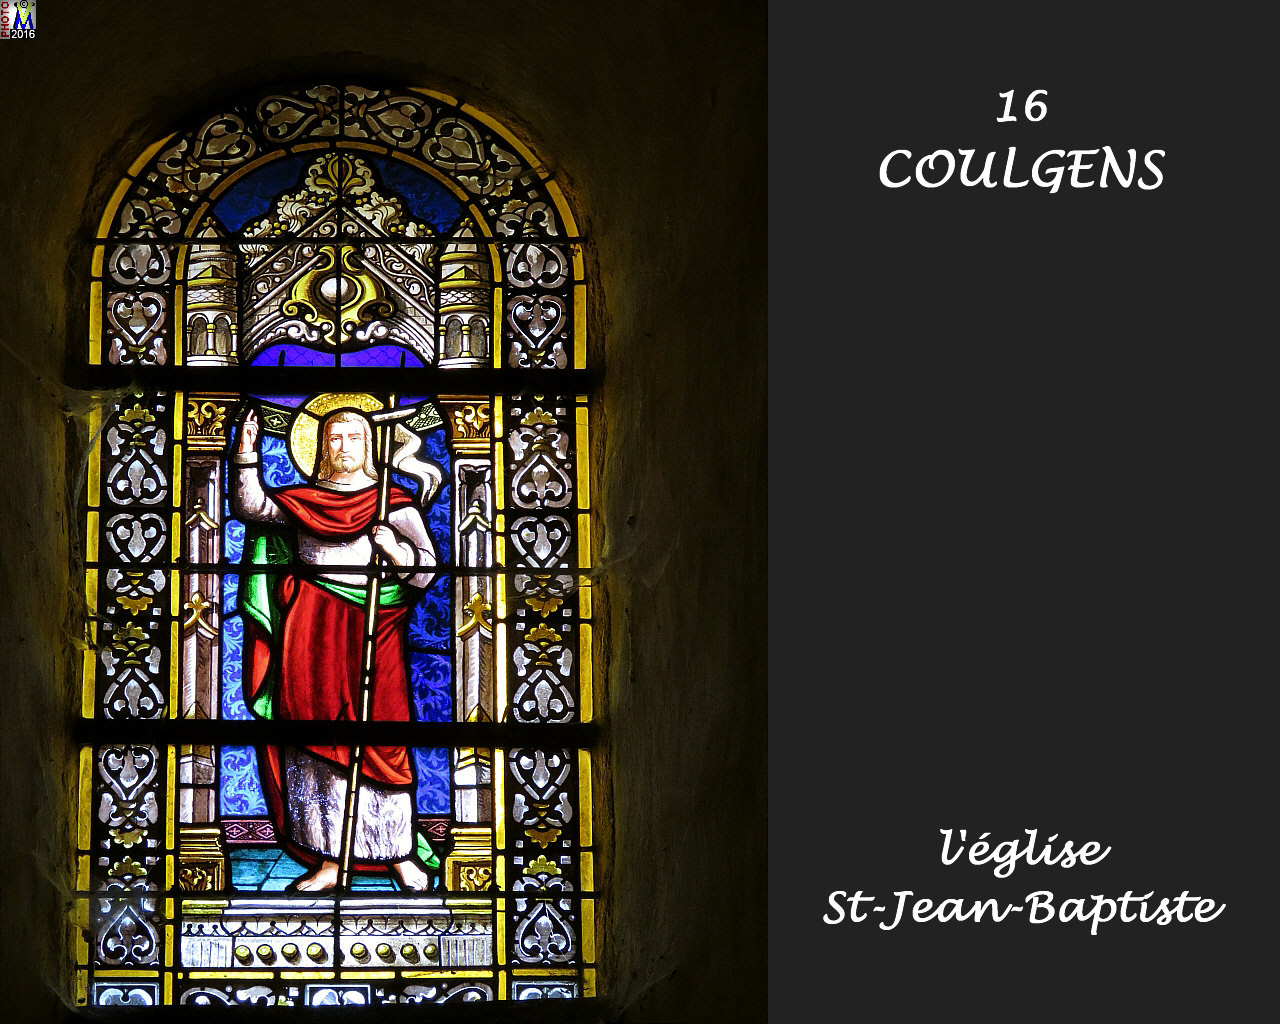 16COULGENS_eglise_1160.jpg